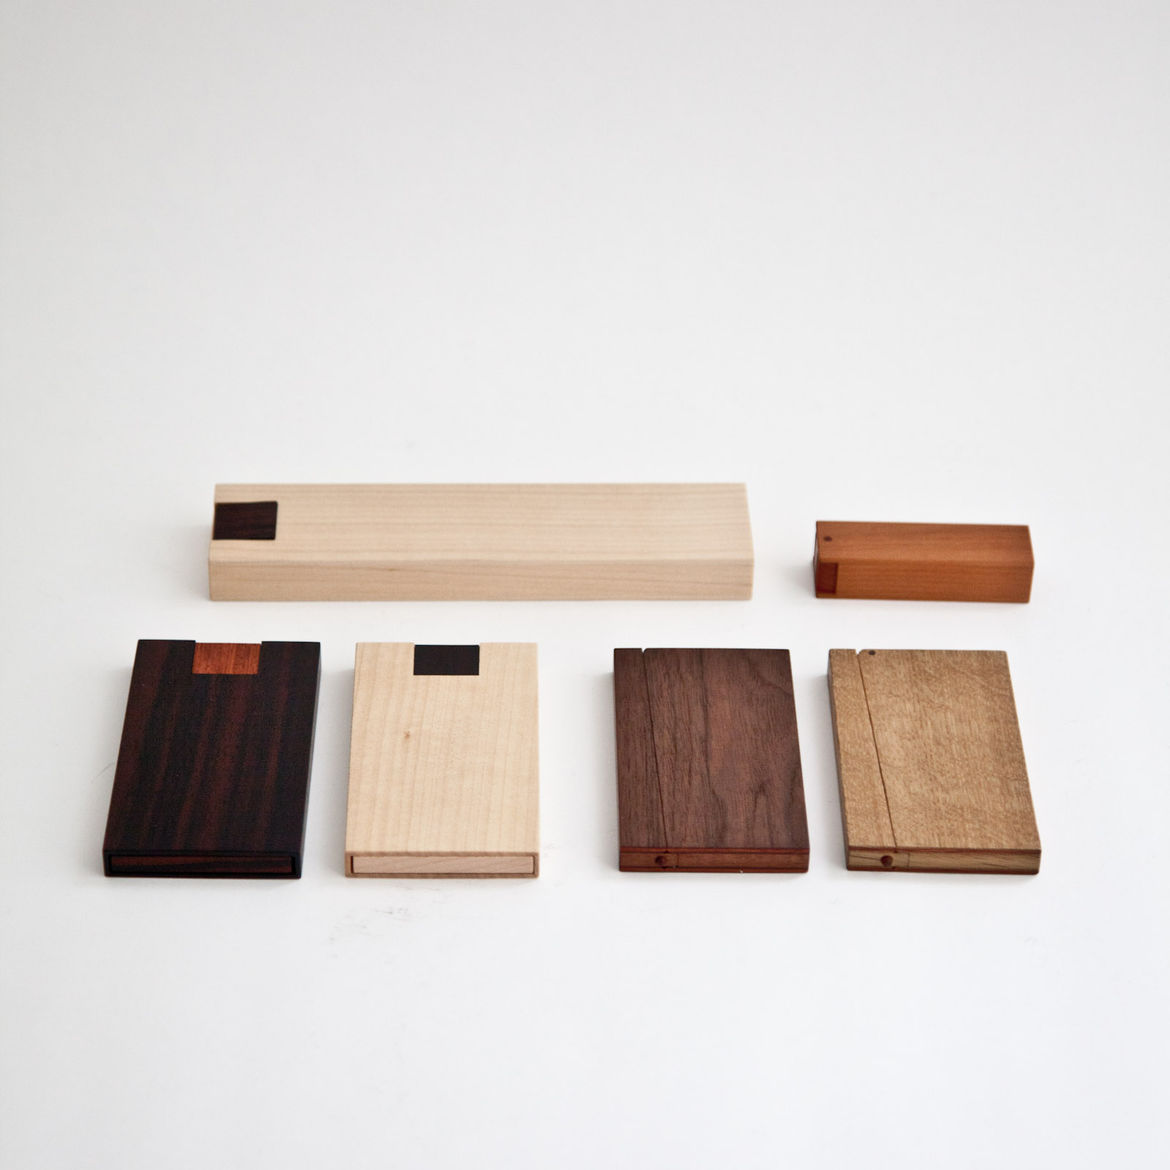 """<b><a href=""""http://store.mjolk.ca/index.php?product=Card+Case+Type+M&shop=1 """">3. Business card cases by Masakage Tanno.</a></b> """"One of the first items we ordered for the store were these oak and walnut magnetic business card cases by master craftsman Mas"""